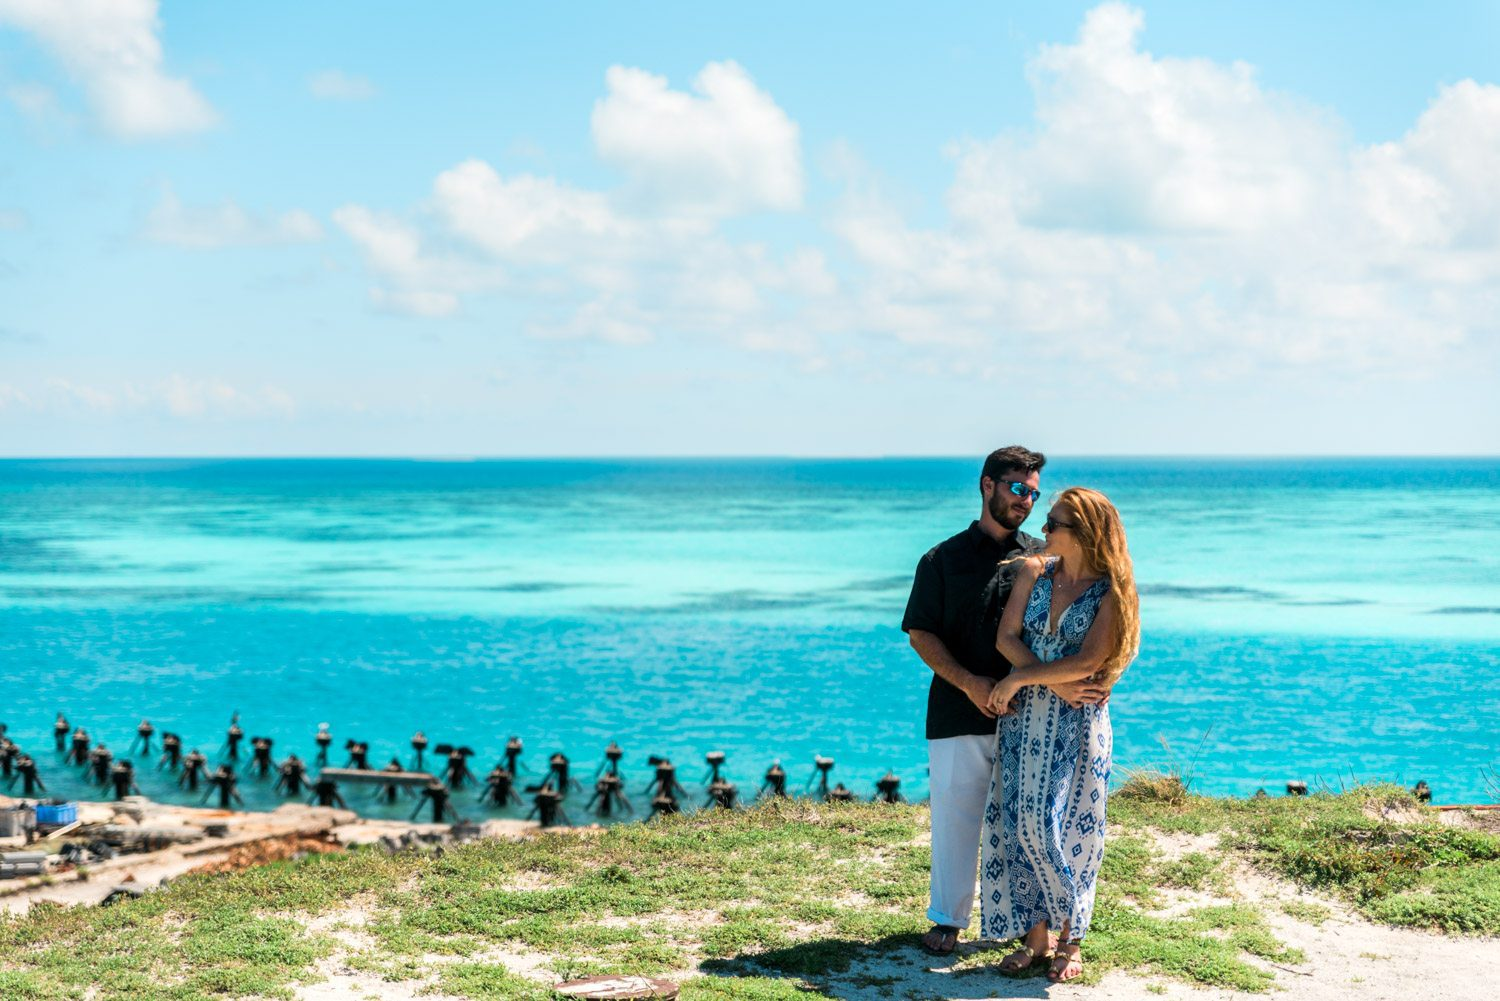 Katherine Oscar Engagement Photos Dry Tortugas 44 - Island Adventure Engagement Session - Dry Tortugas National Park and Fort Jefferson